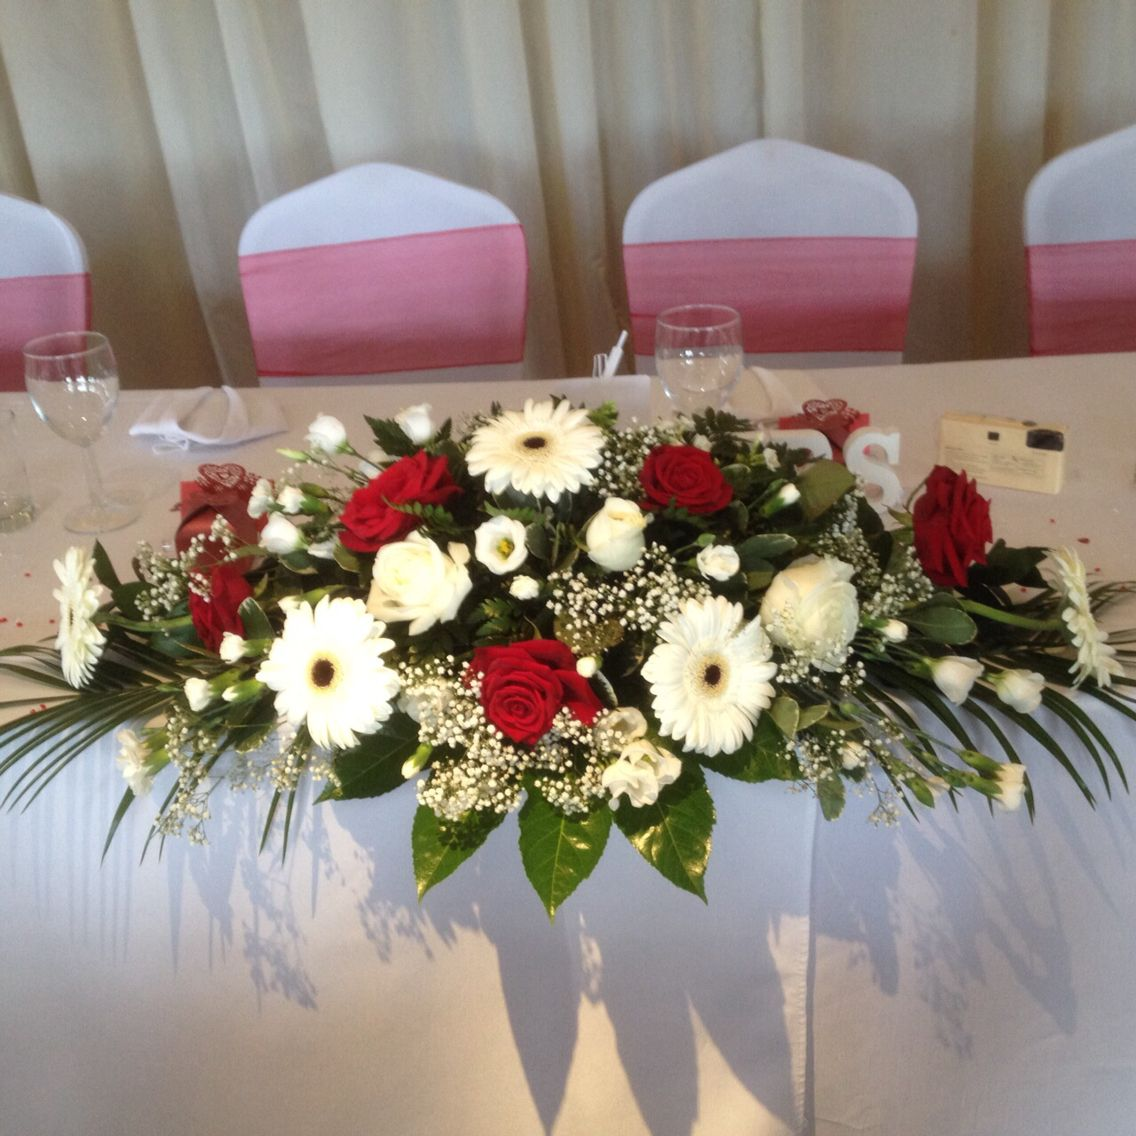 Top 25 Best Wedding Head Tables Ideas On Pinterest: Top Table Arrangement In Roses And Gerbera Red And White